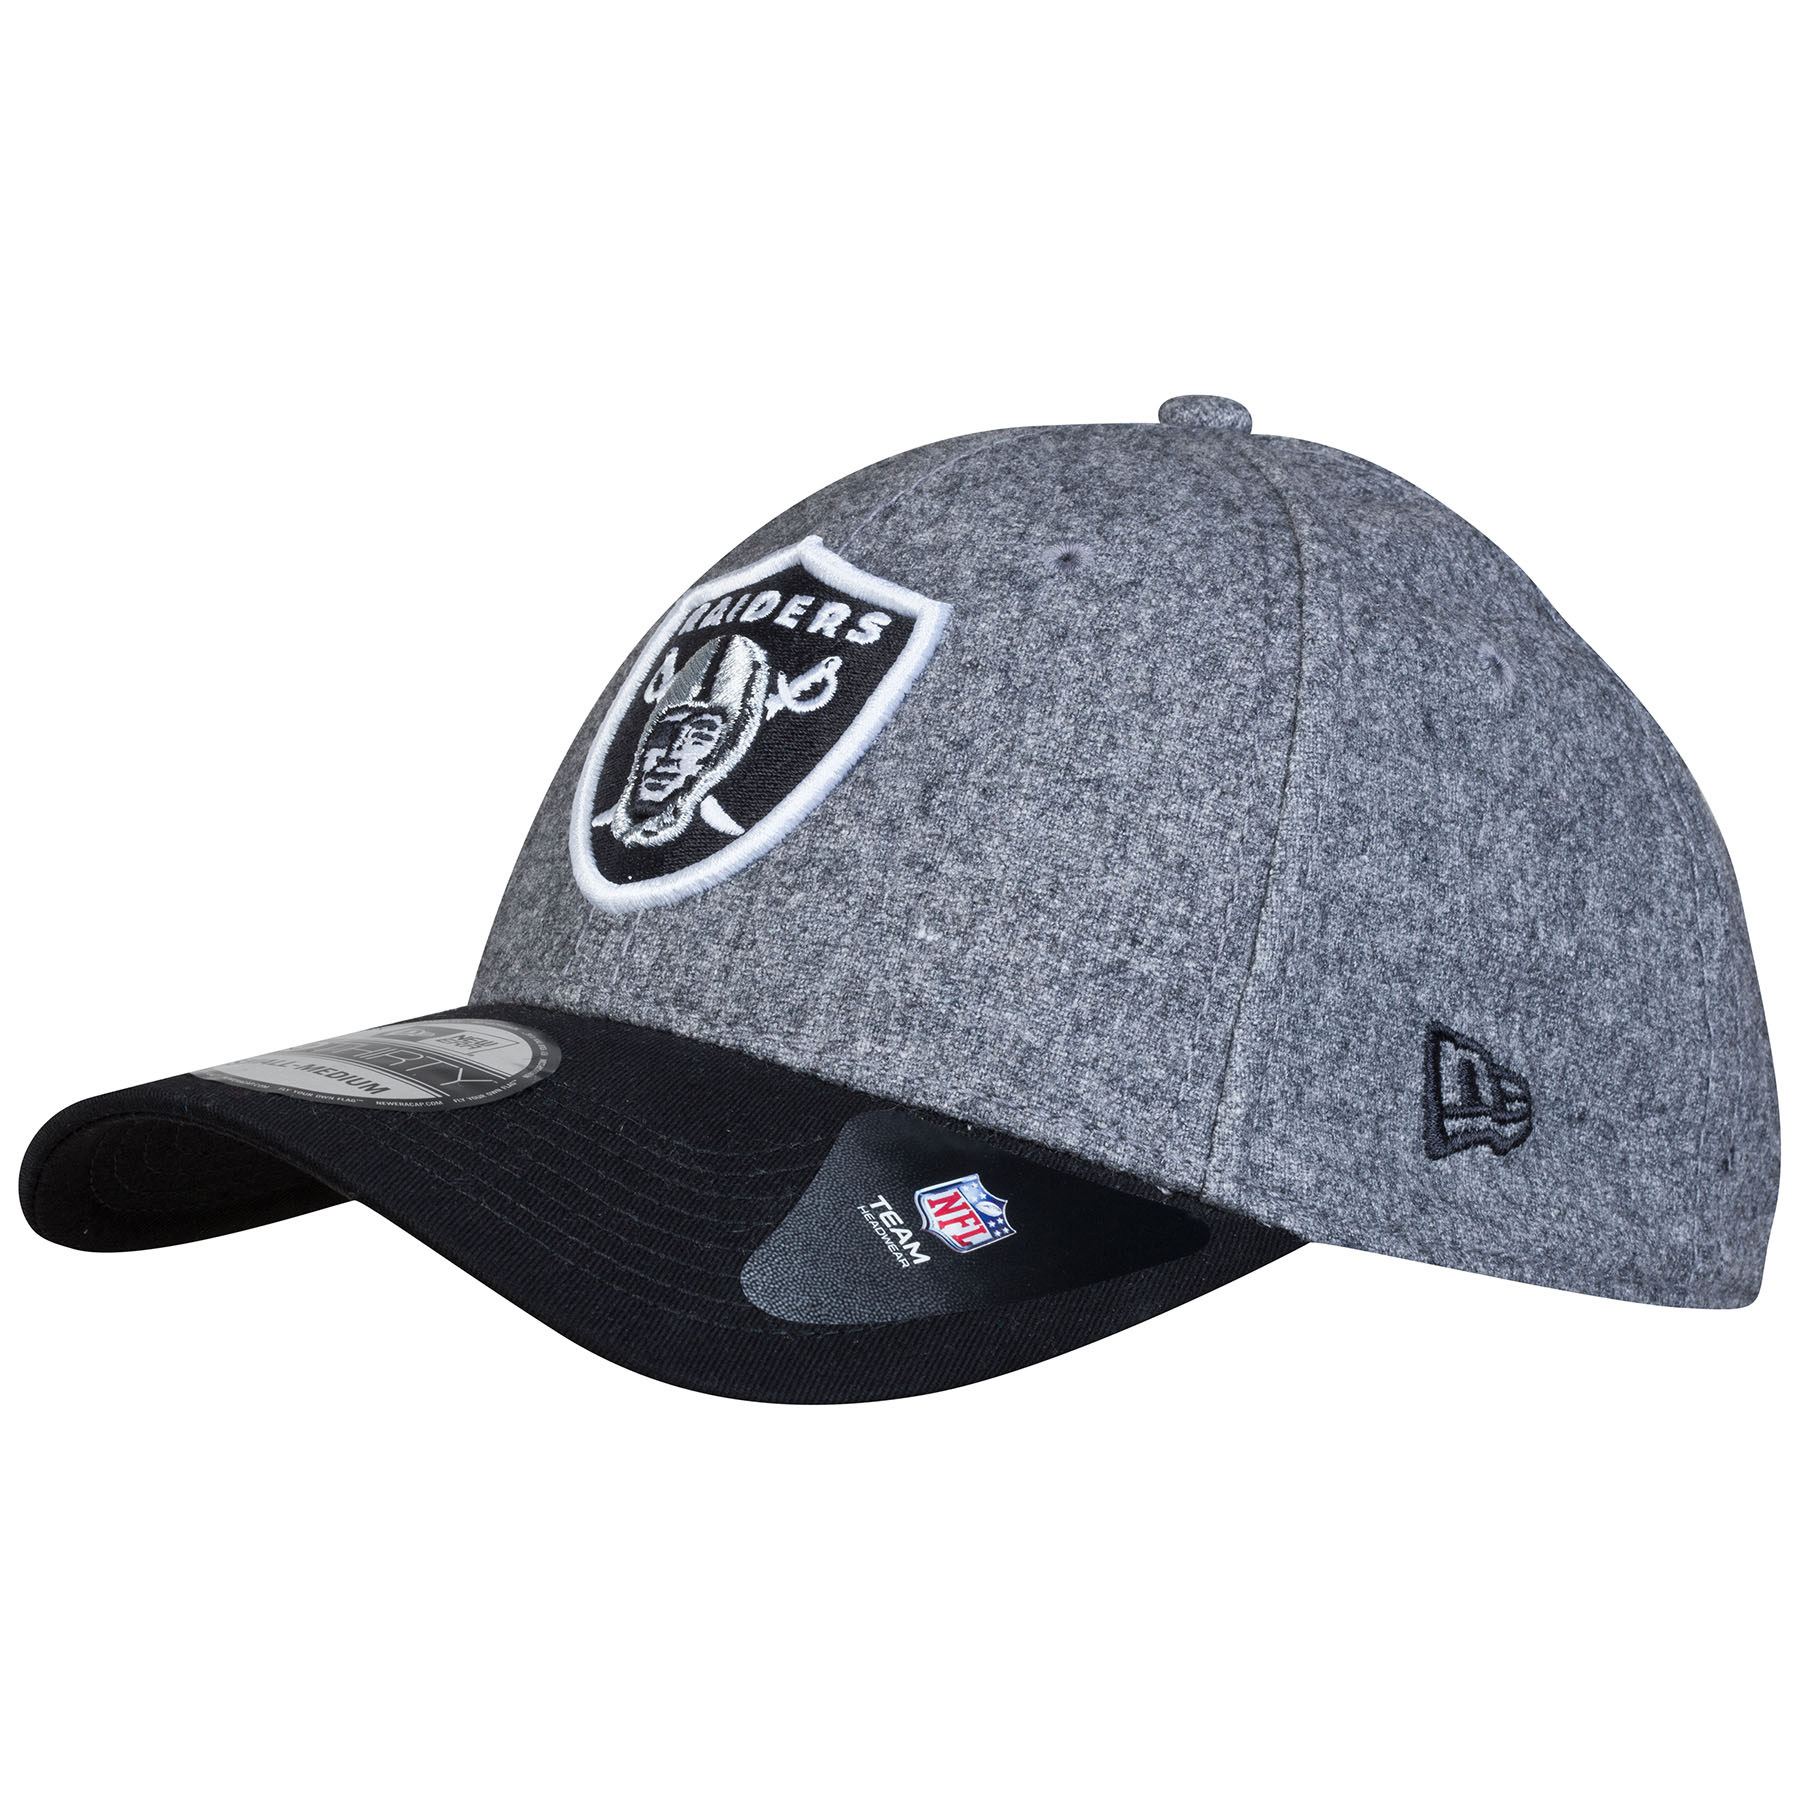 Oakland Raiders International Series 2014 New Era Meltop 39THIRTY Cap